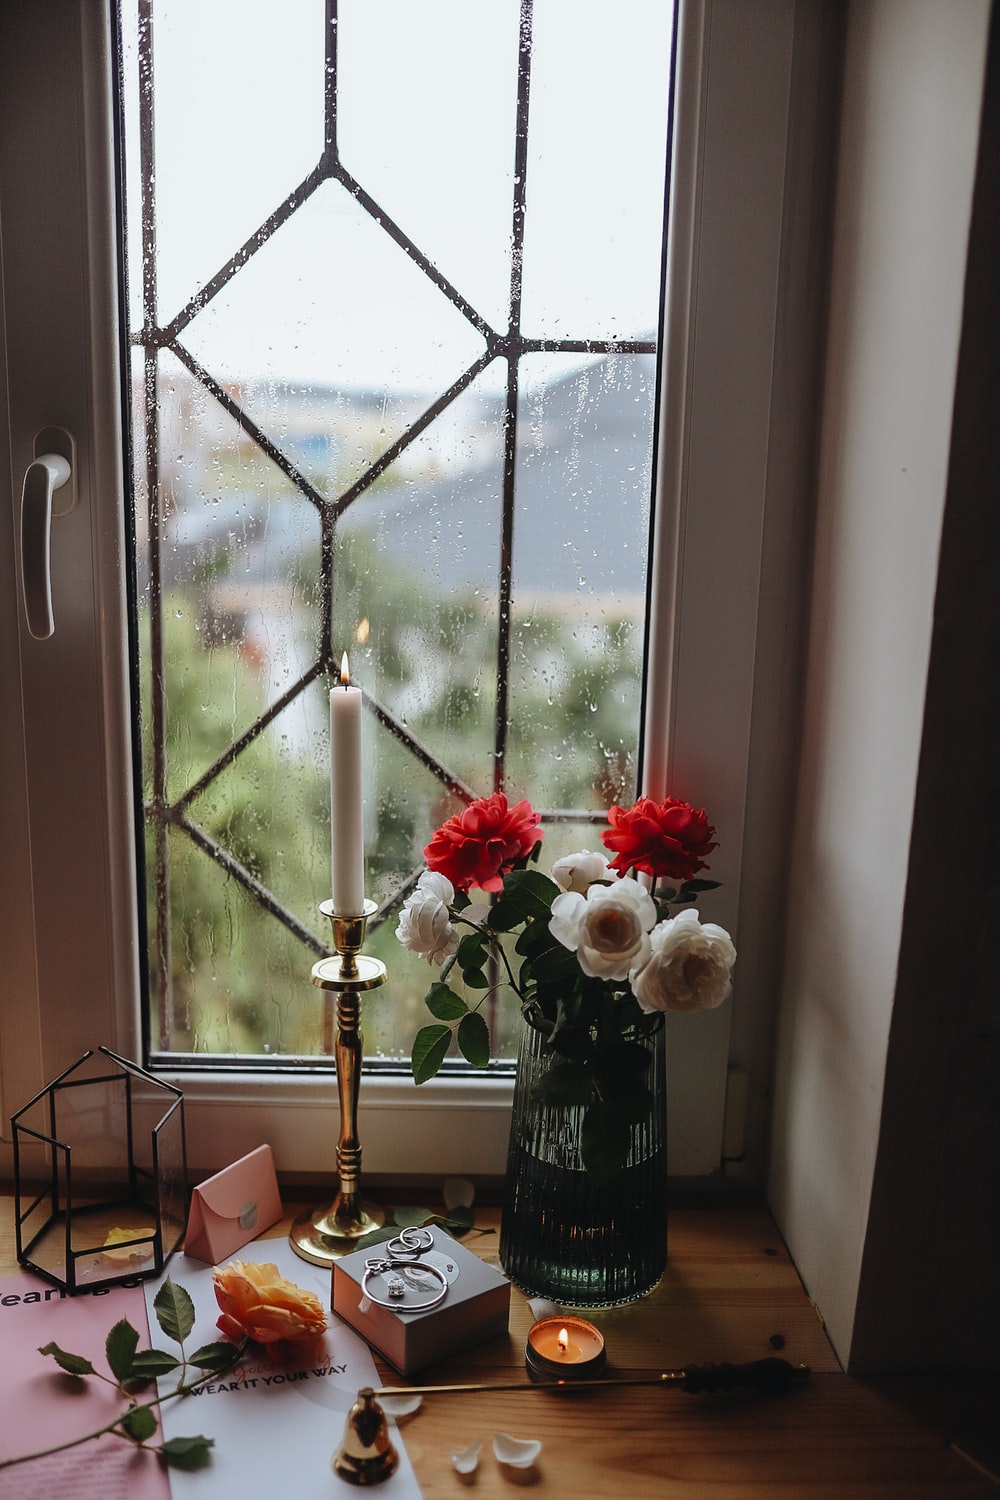 red and white roses in vase on table